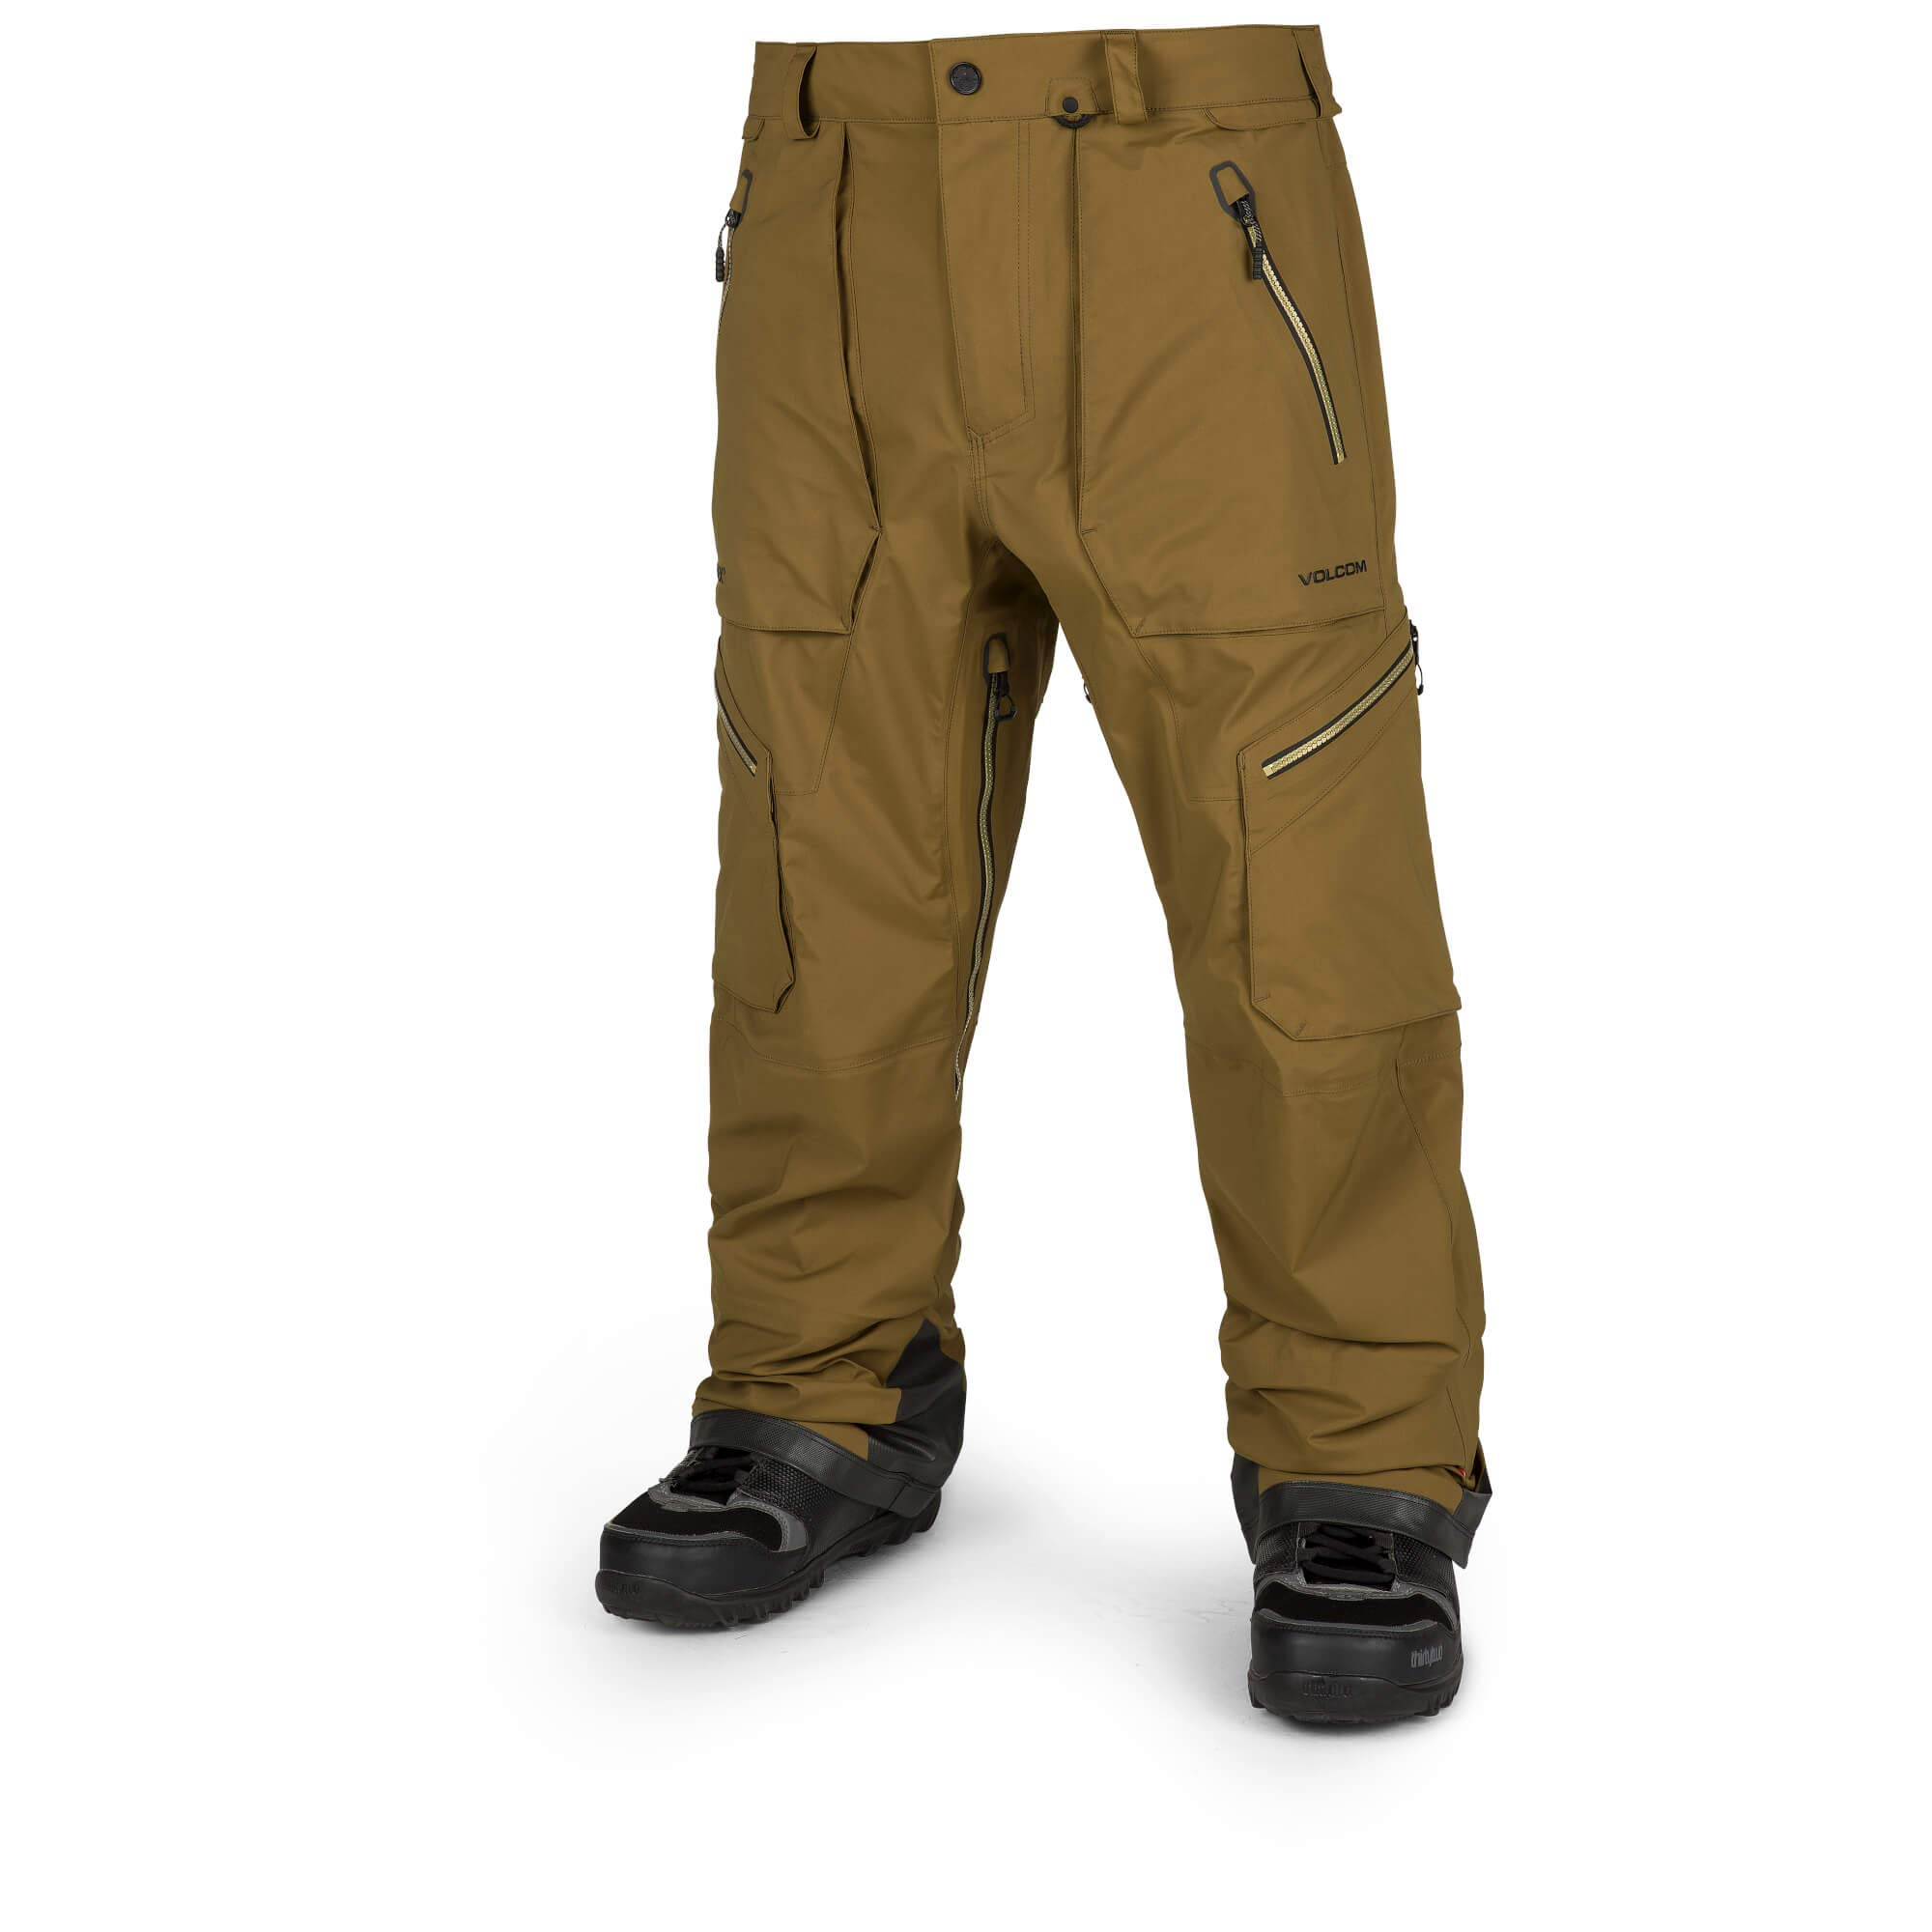 Volcom Men's Guch 3 Layer Stretch Gore-Tex Pant, Moss Small